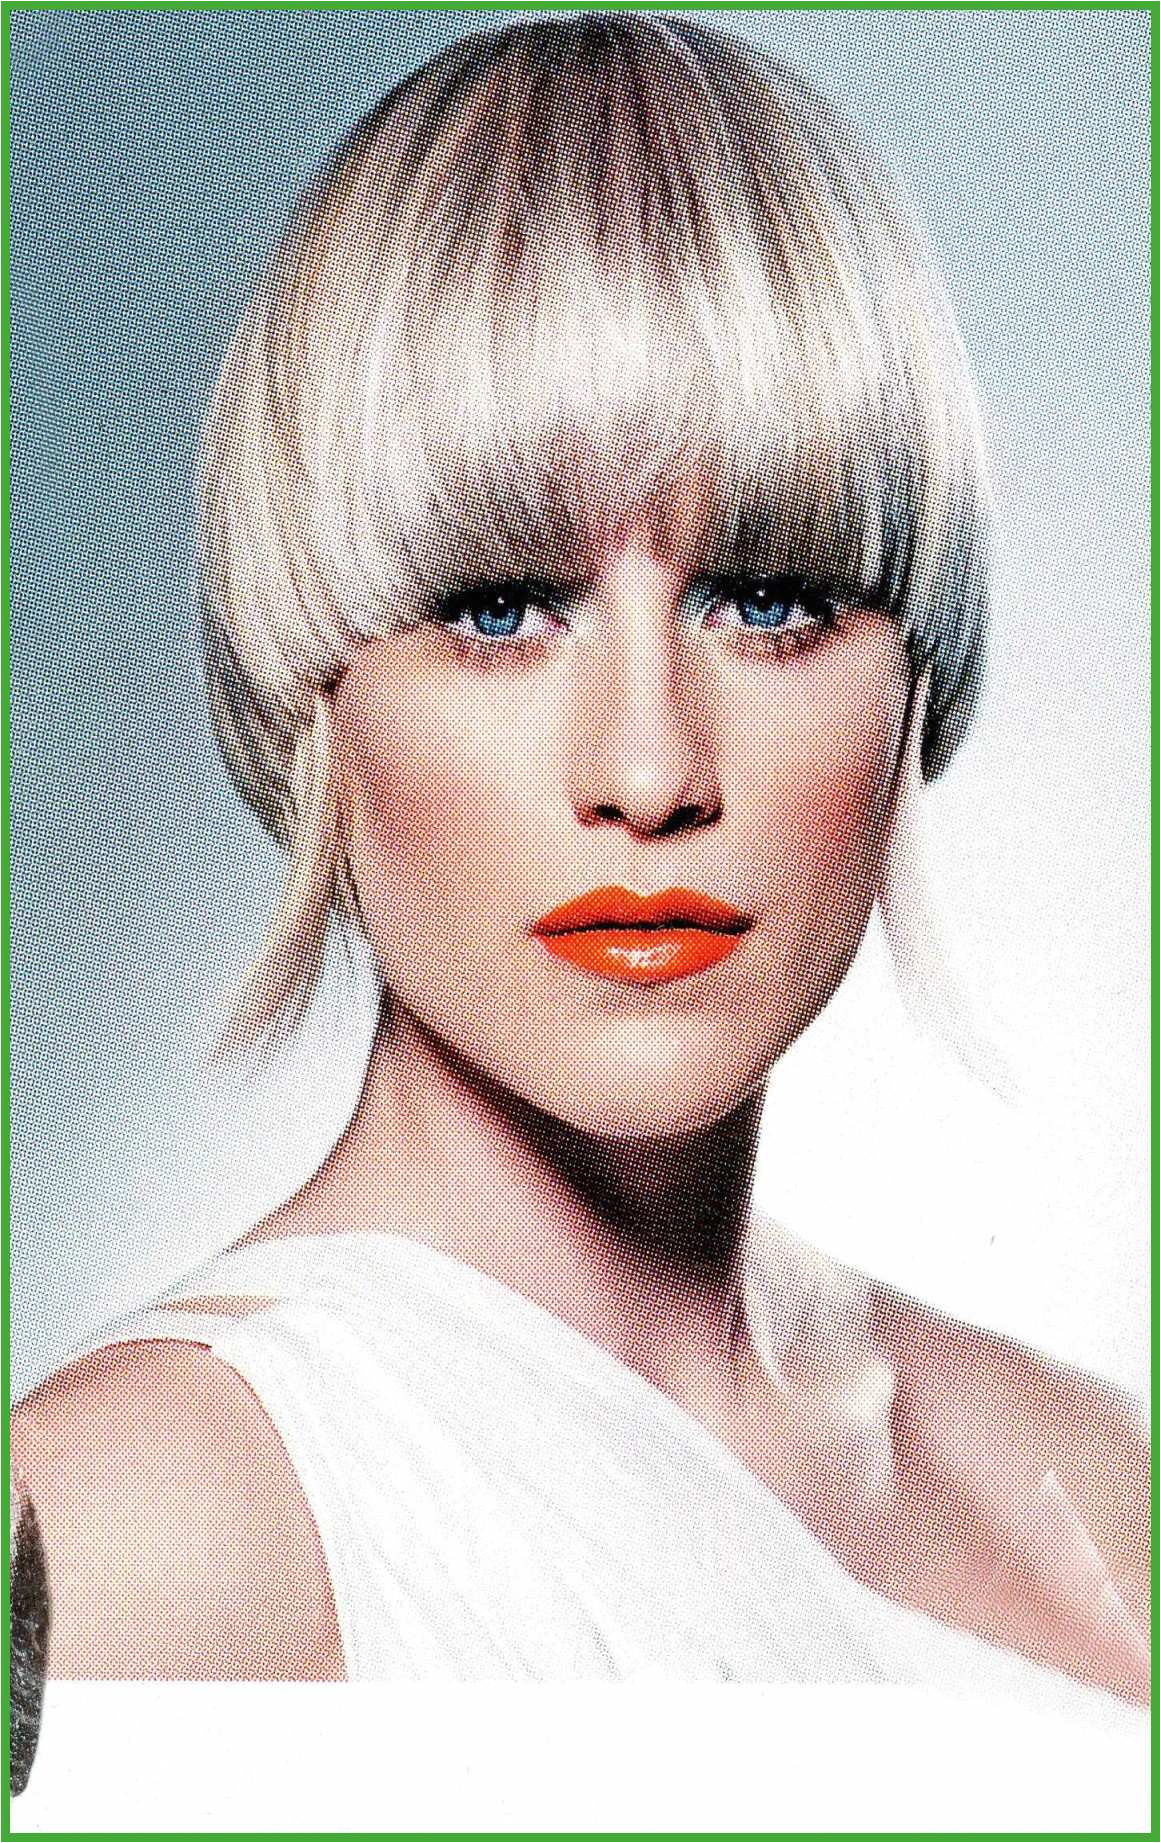 Short Hairstyles Drawing Cool Short Hairstyles Girls Awesome Cool Short Haircuts for Women